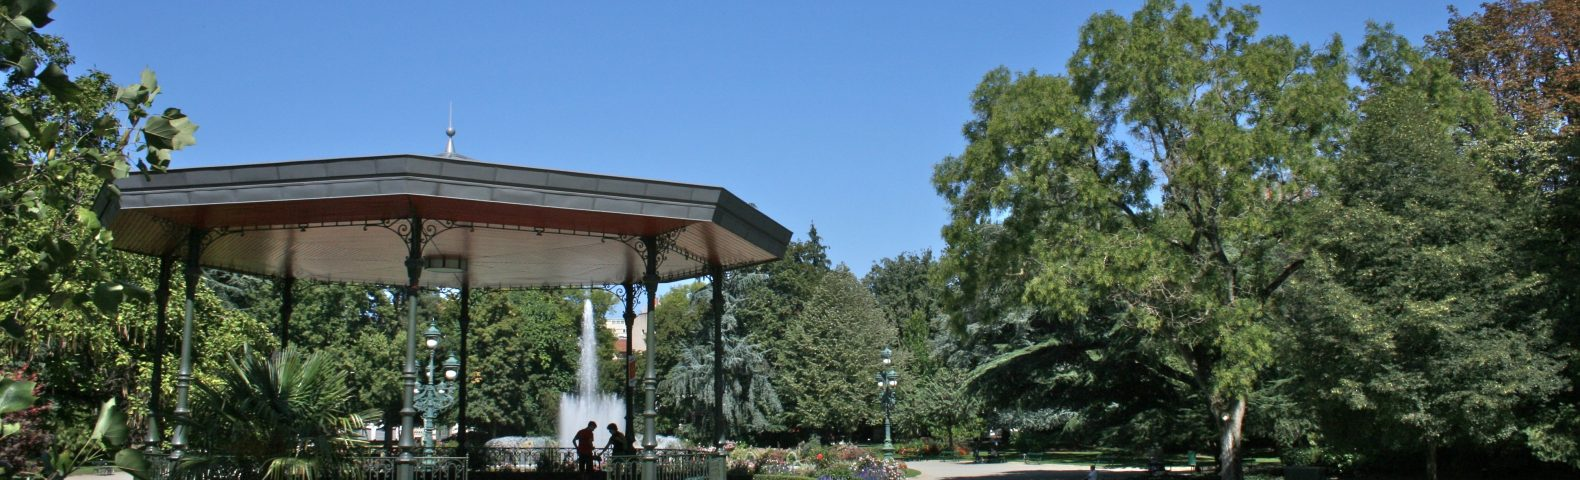 Bandstand_in_Jardin_des_Plantes,_Toulouse,_2